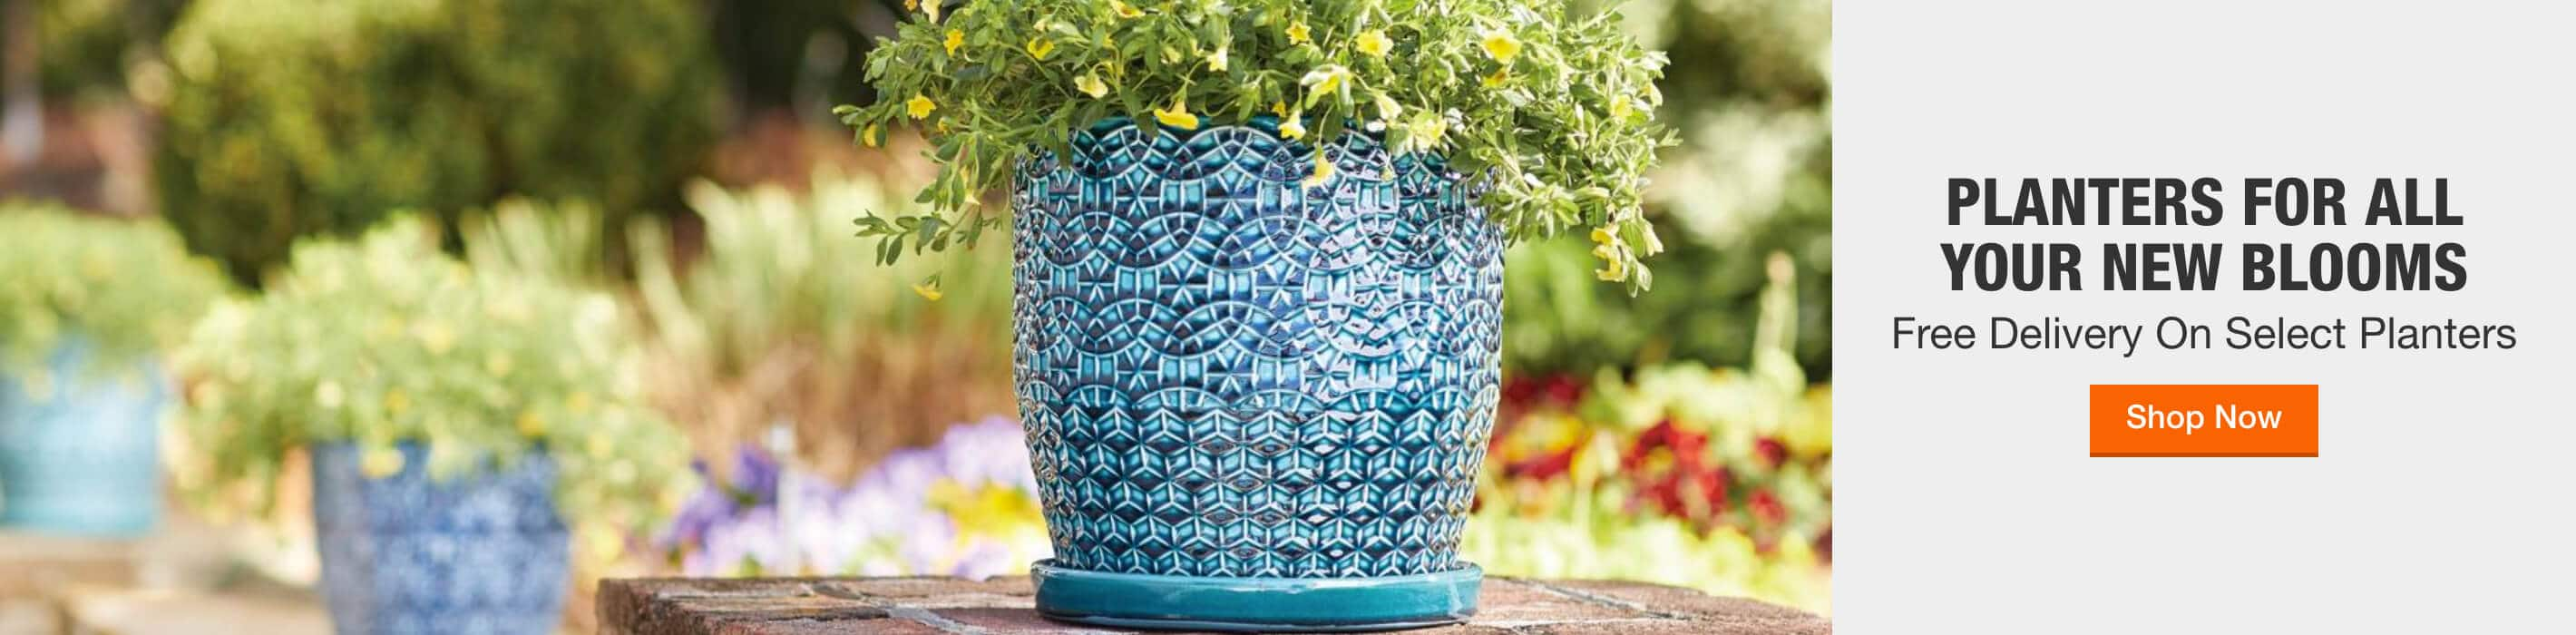 PLANTERS FOR ALL YOUR NEW BLOOMS + Free Delivery On Select Planters Shop Now